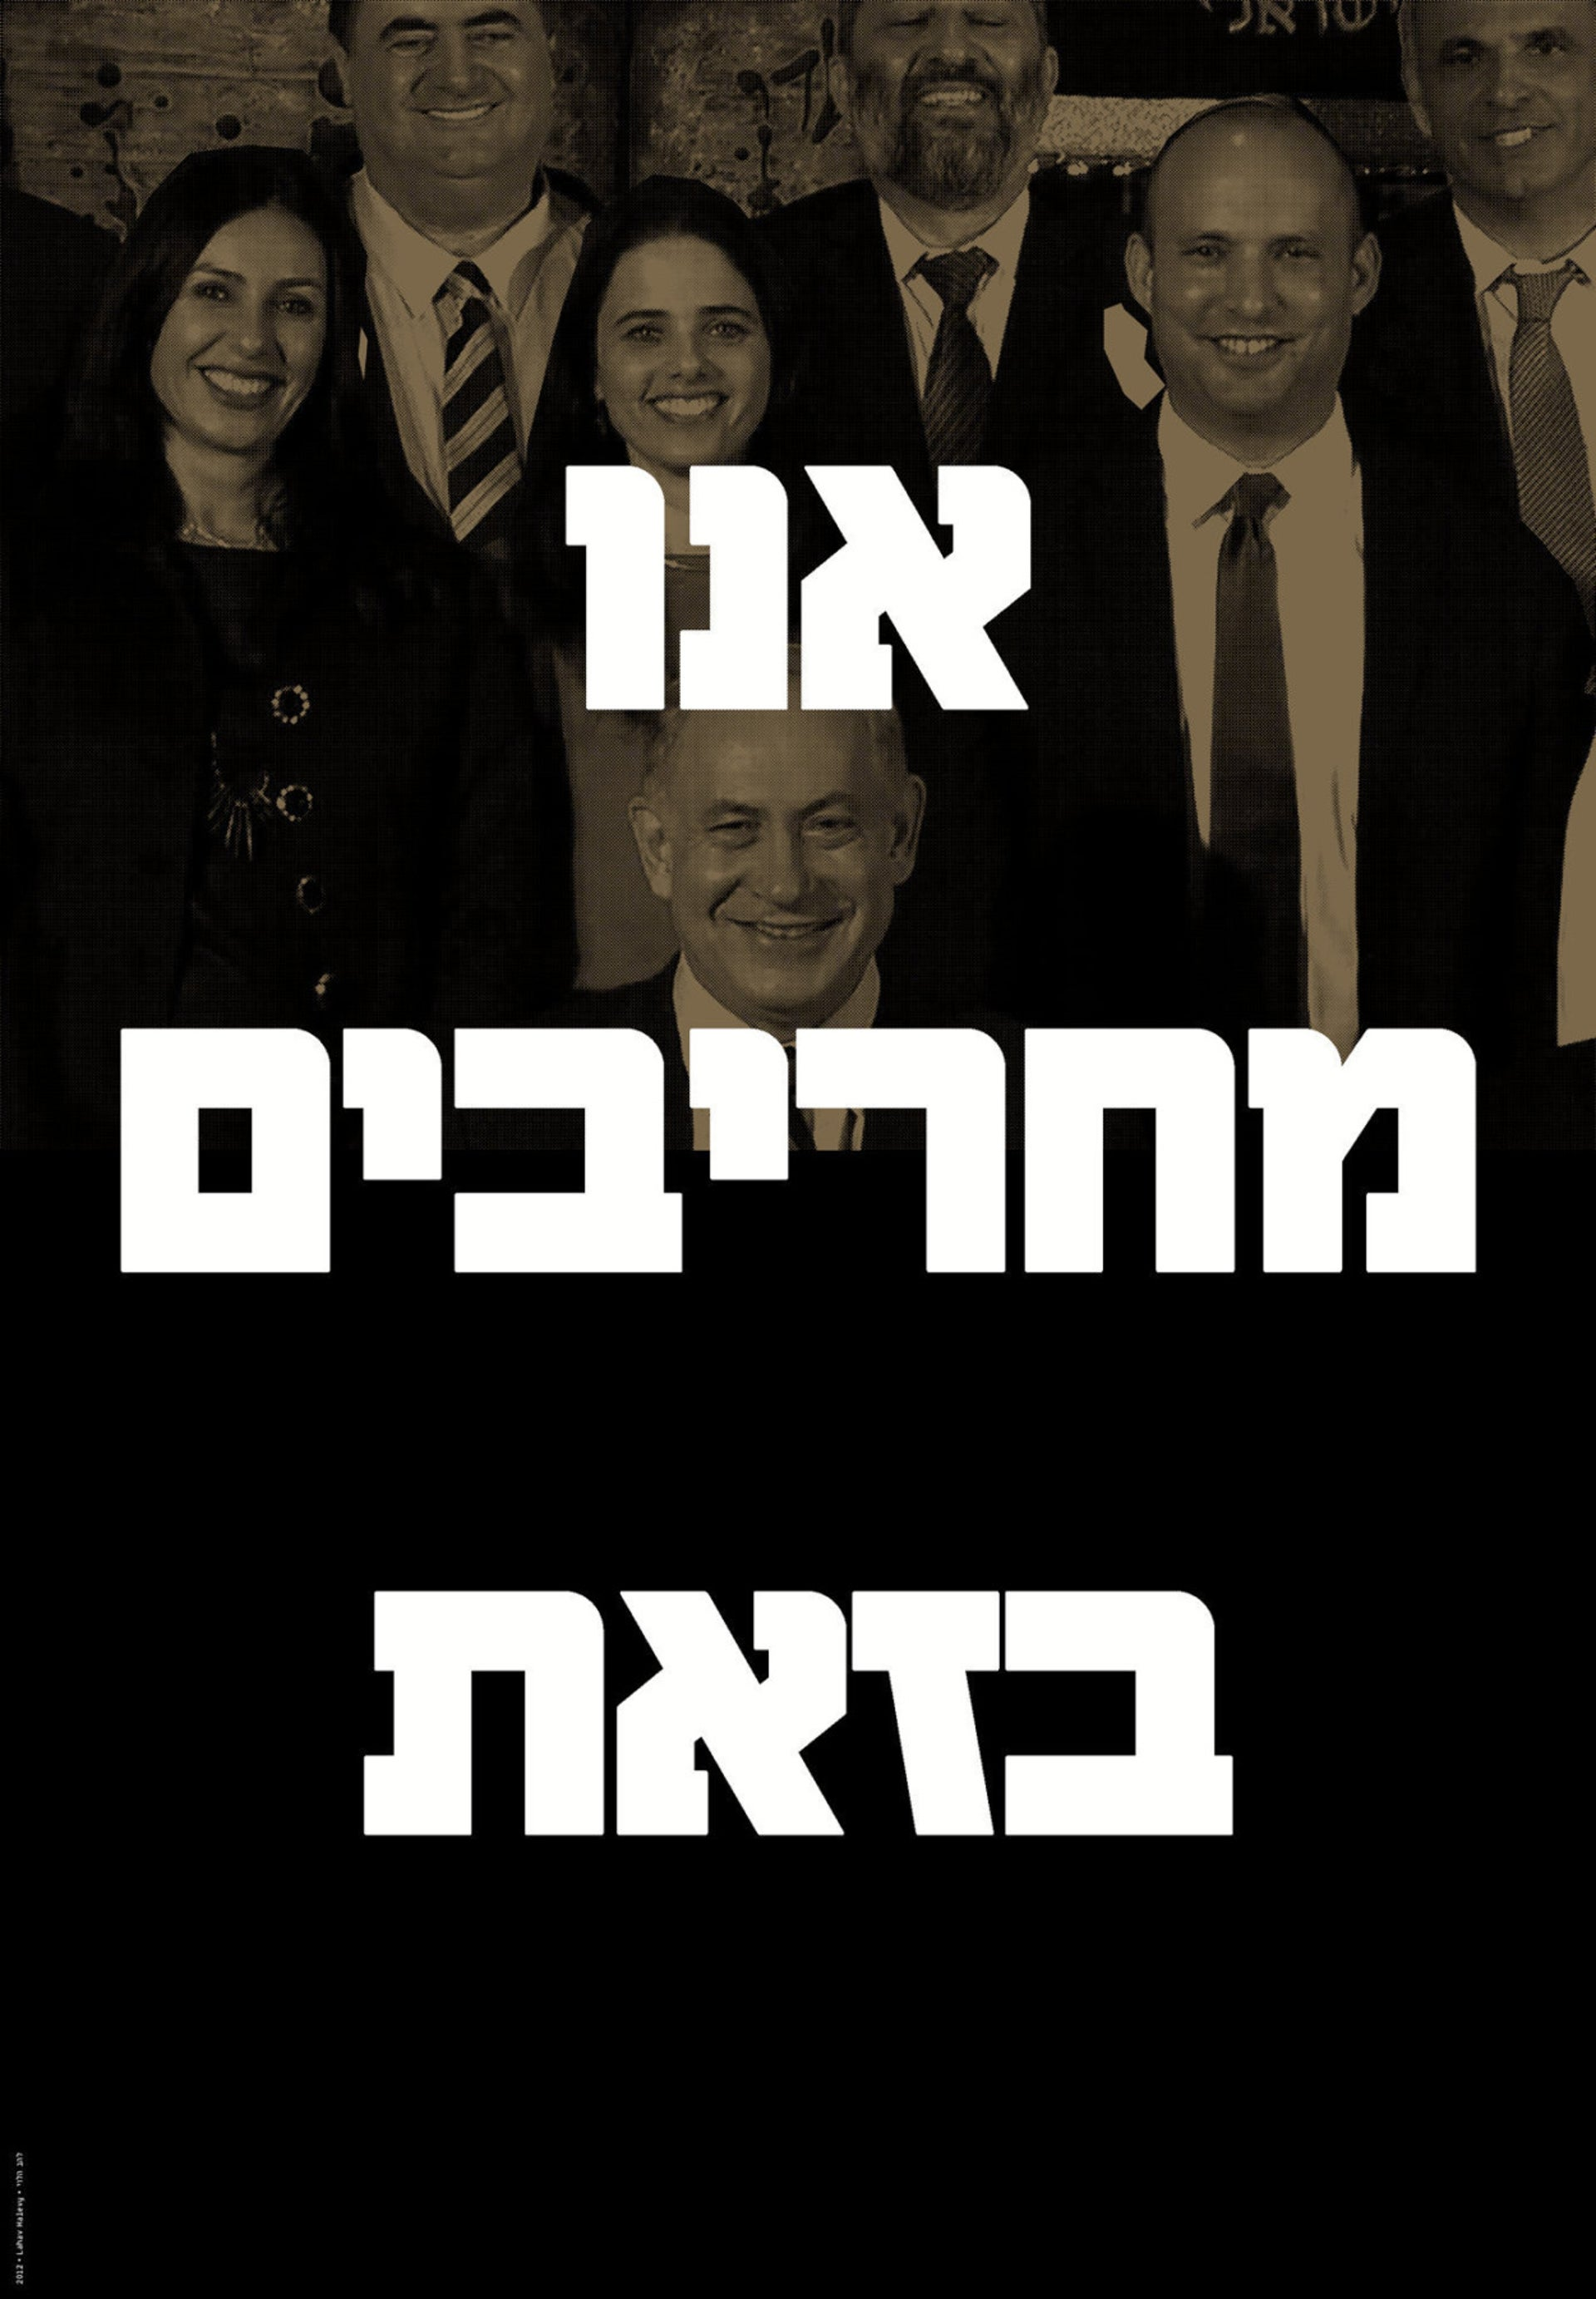 A poster by Halevy. 'We hereby destroy' is written over a photo of Israel's government. A play on 'We hereby declare (the establishment of a Jewish state)' from Israel's declaration of independence.